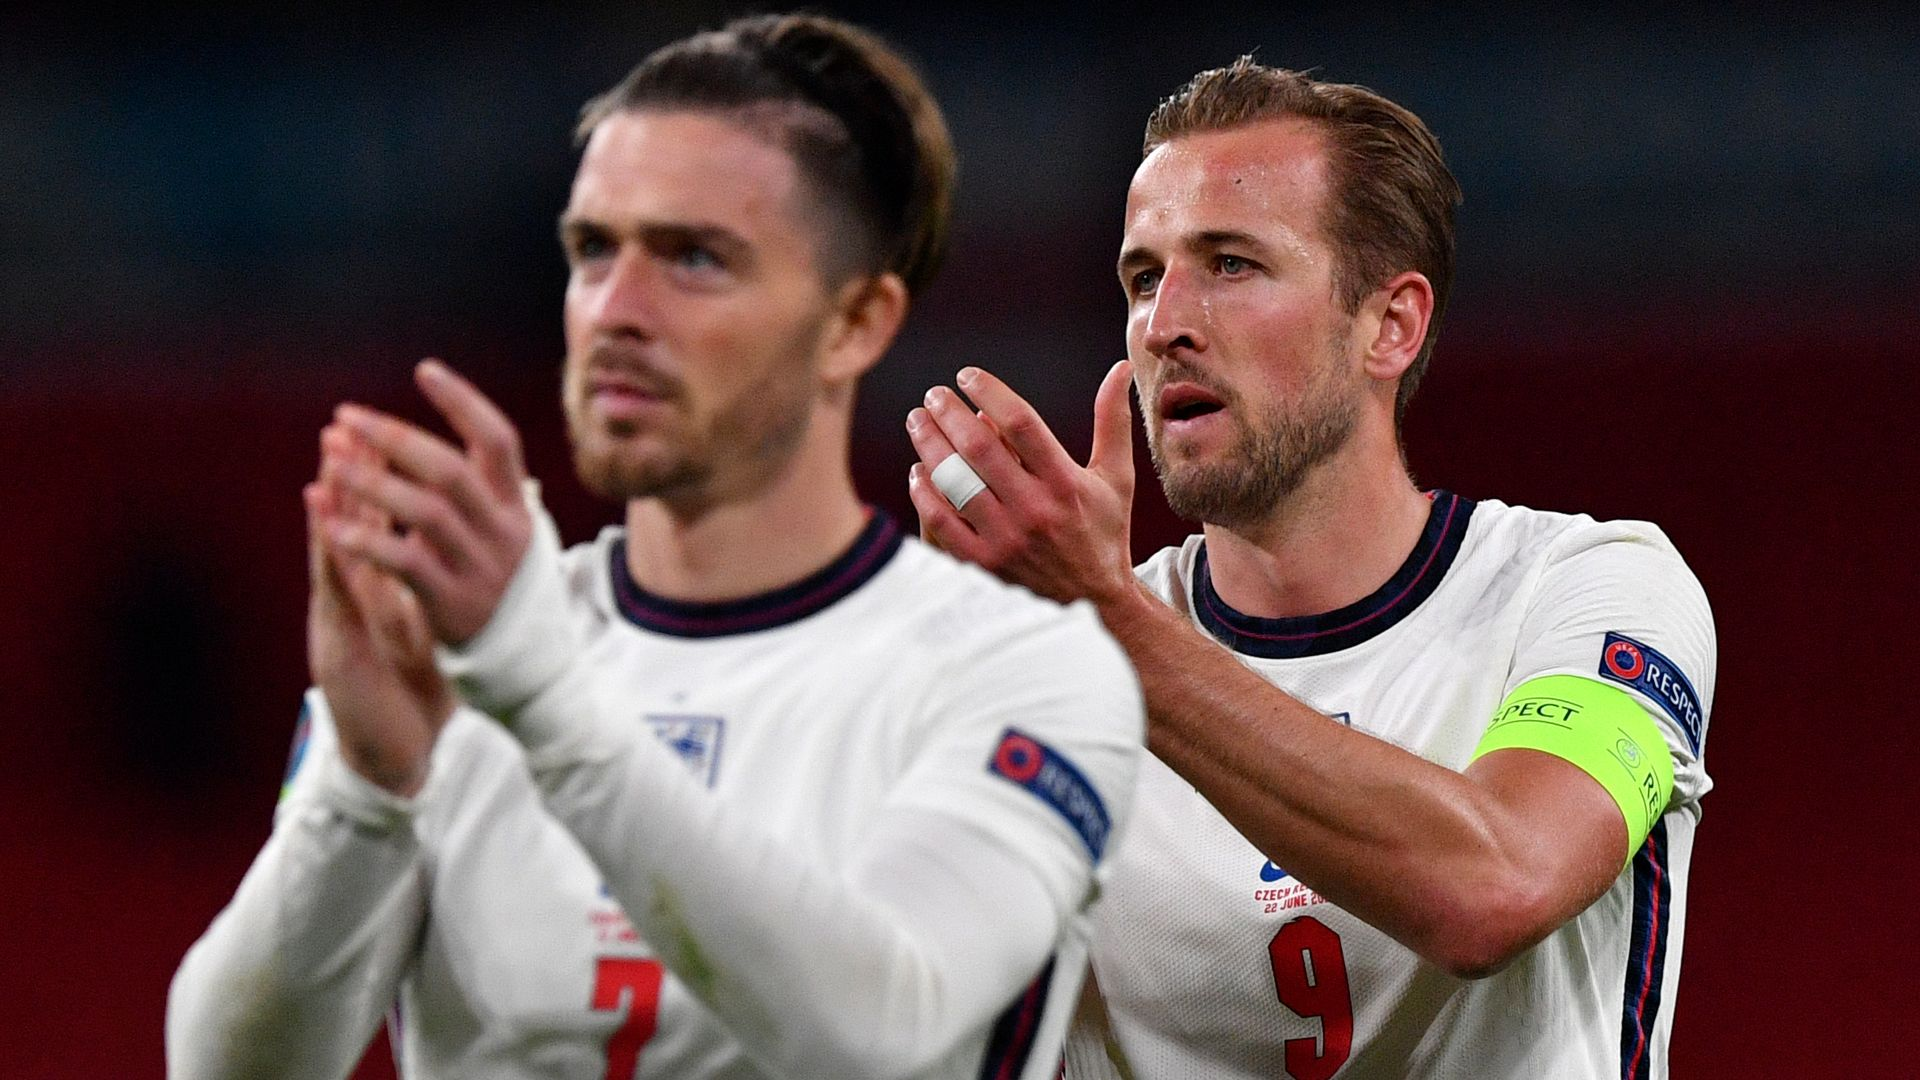 Grealish: 'Unbelievable' Kane best I've played with